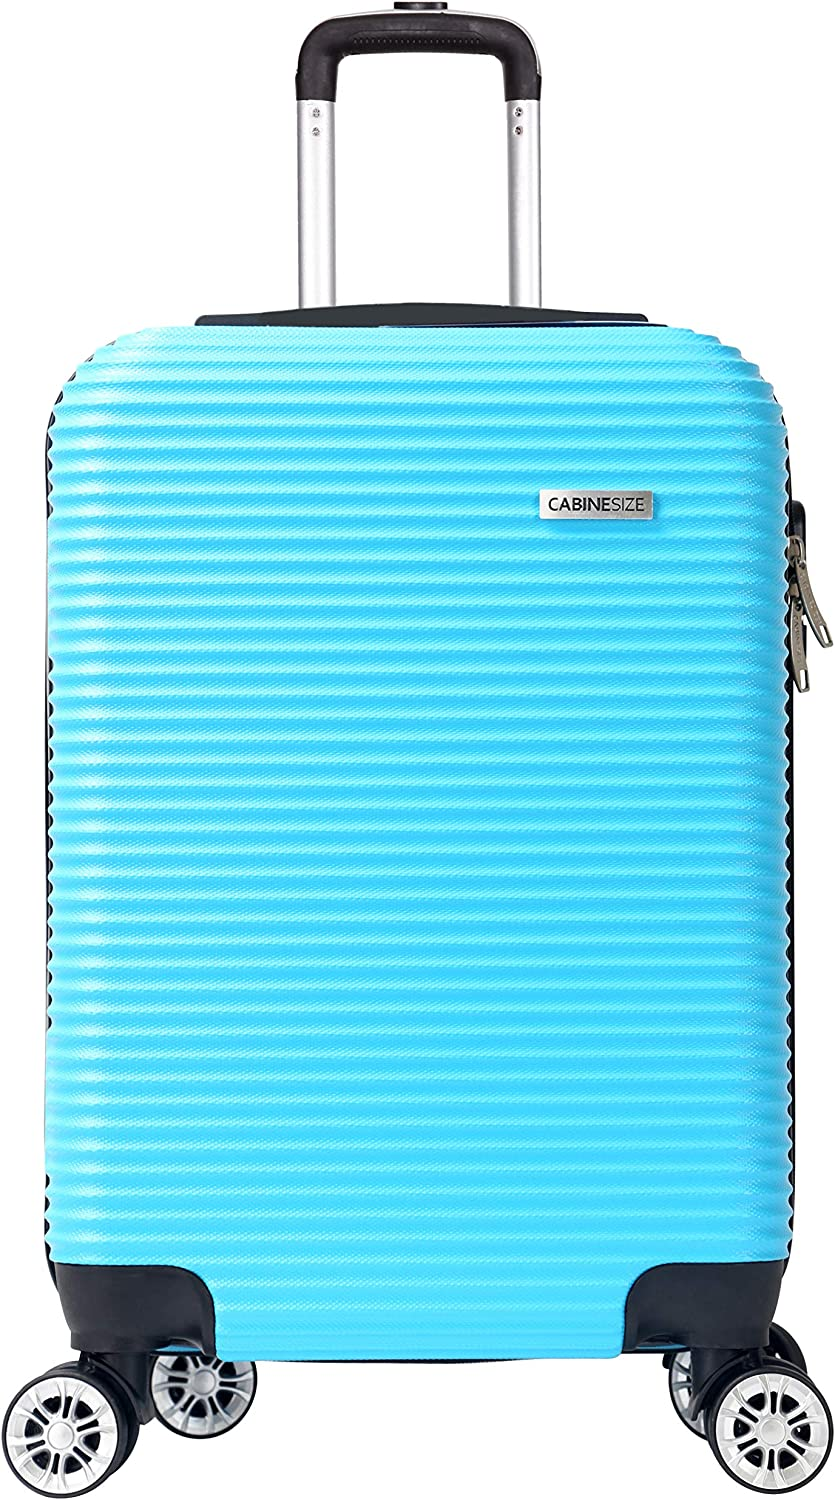 Cabine Size Levin Valise Cabine Rigide 8 Roues agreee Low Cost Turquoise